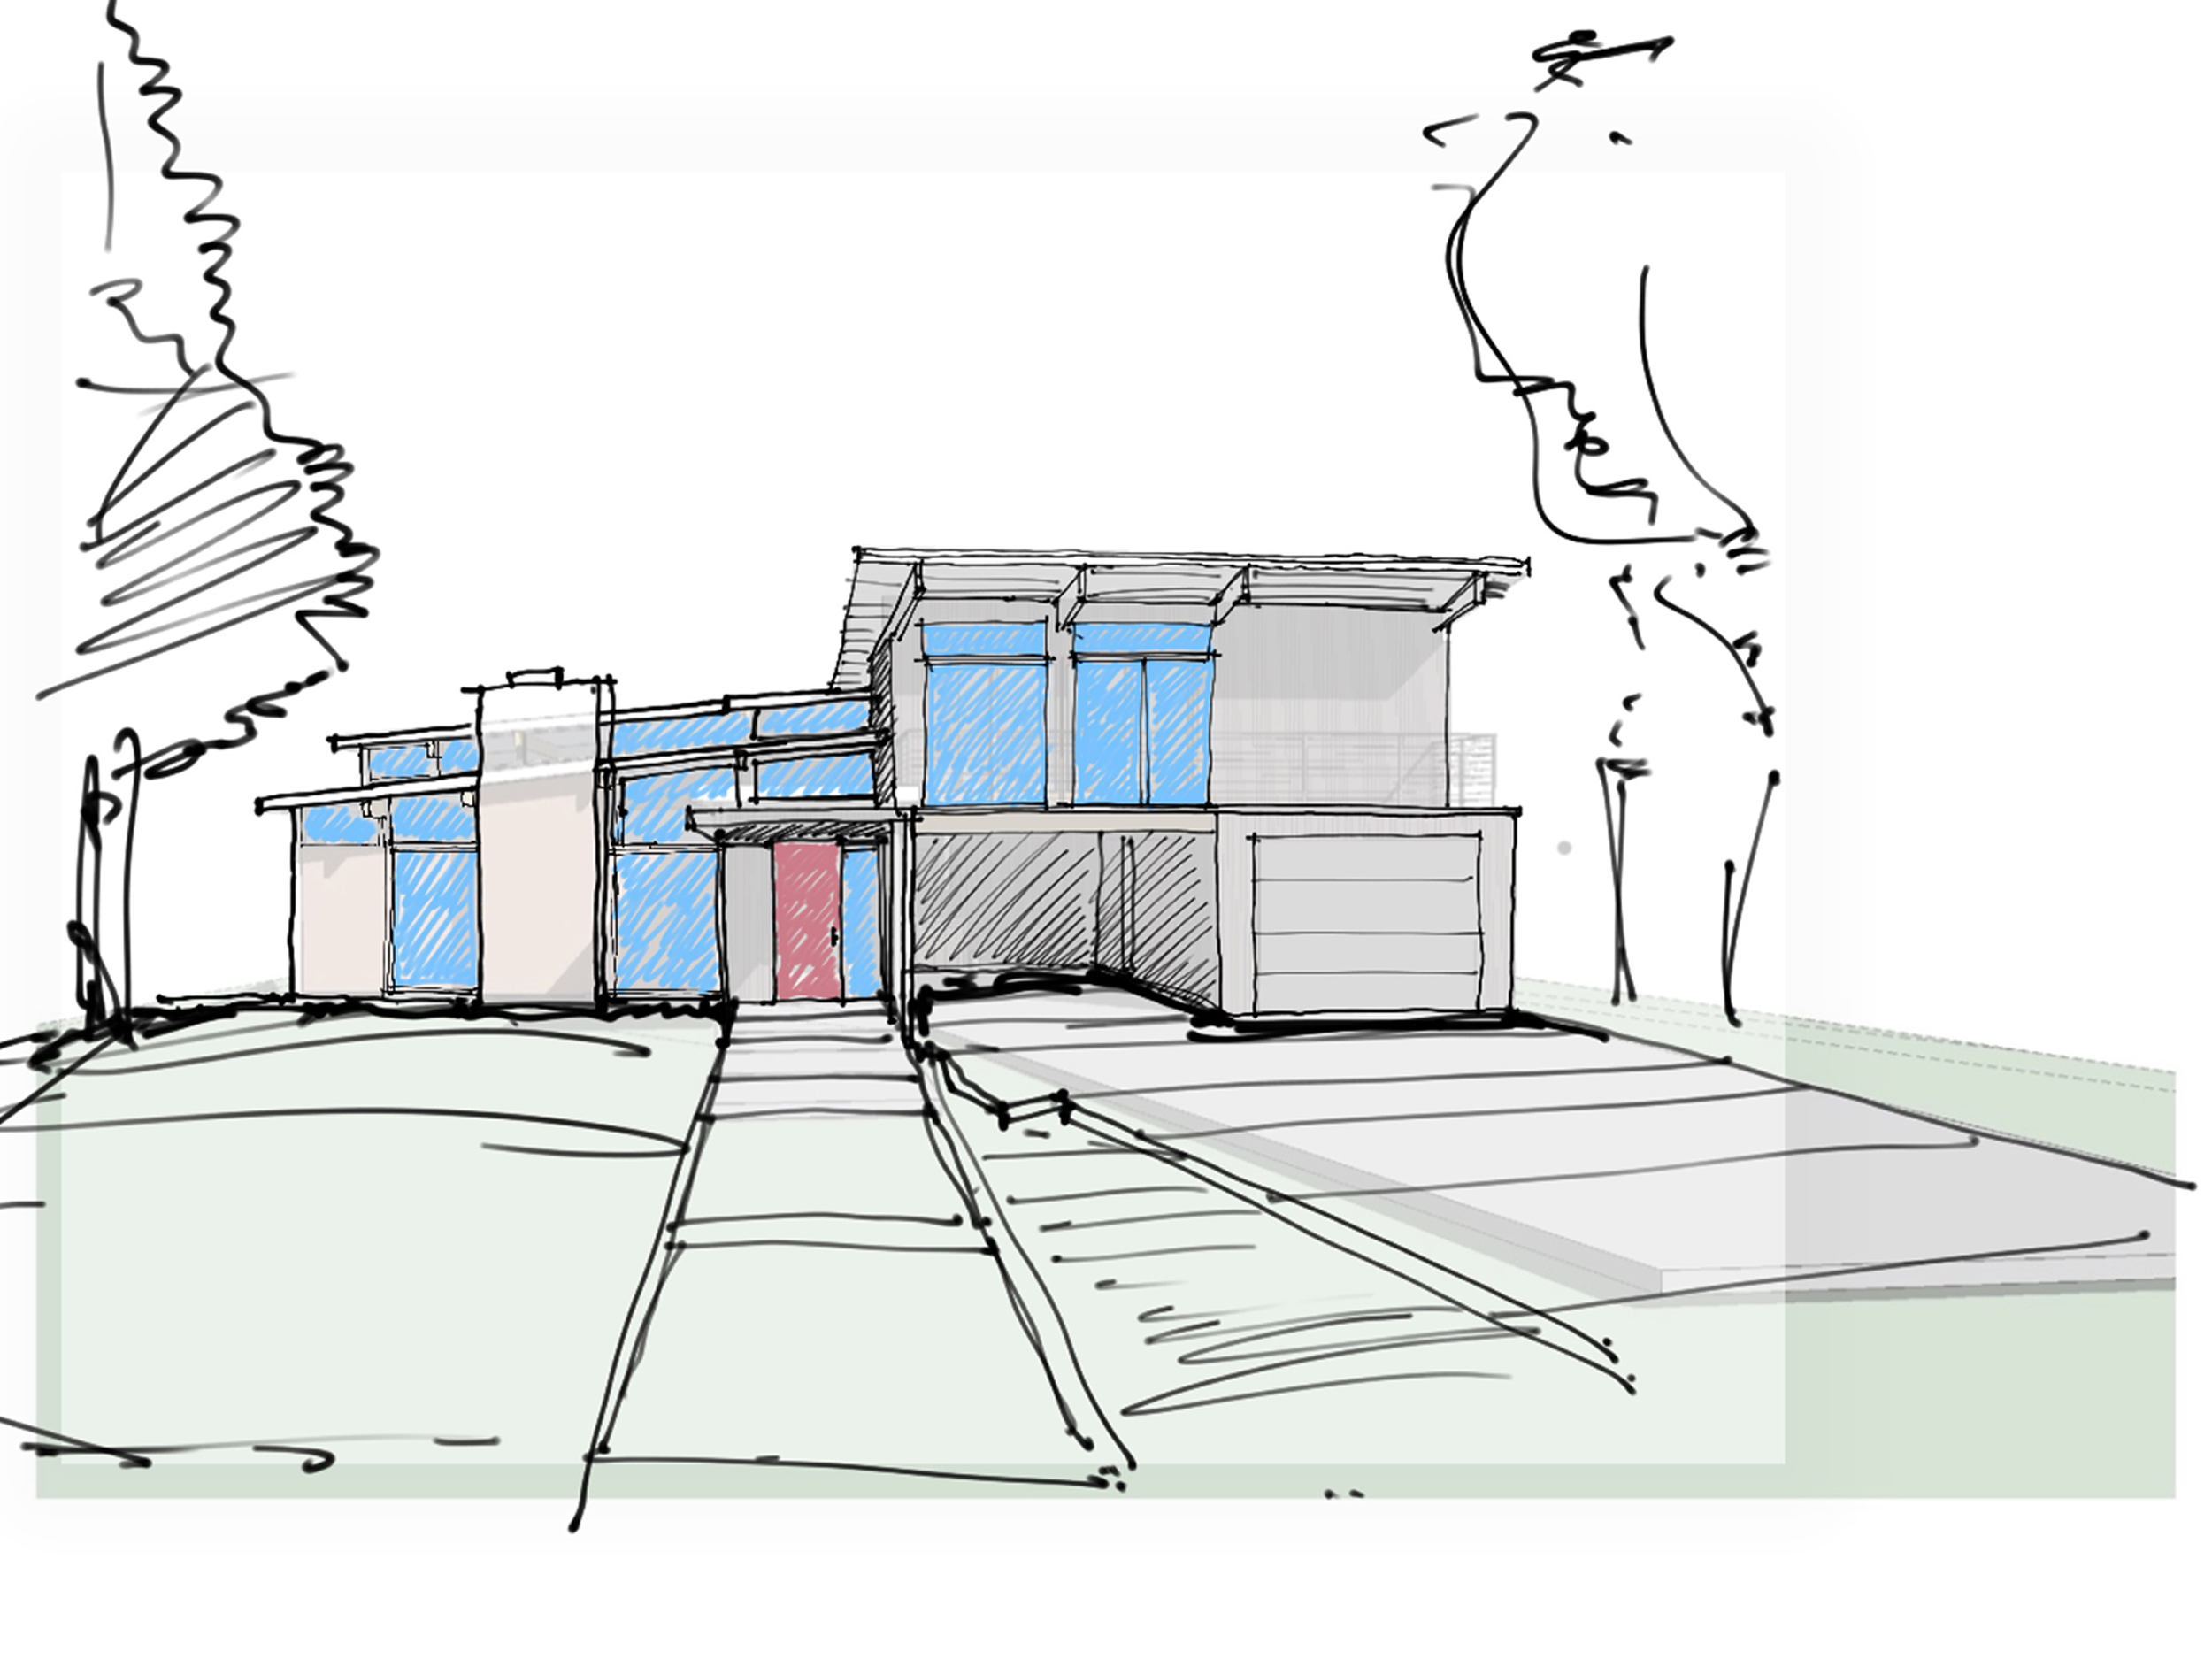 Grant - Perspective sketche - Front Shed Roof.jpg